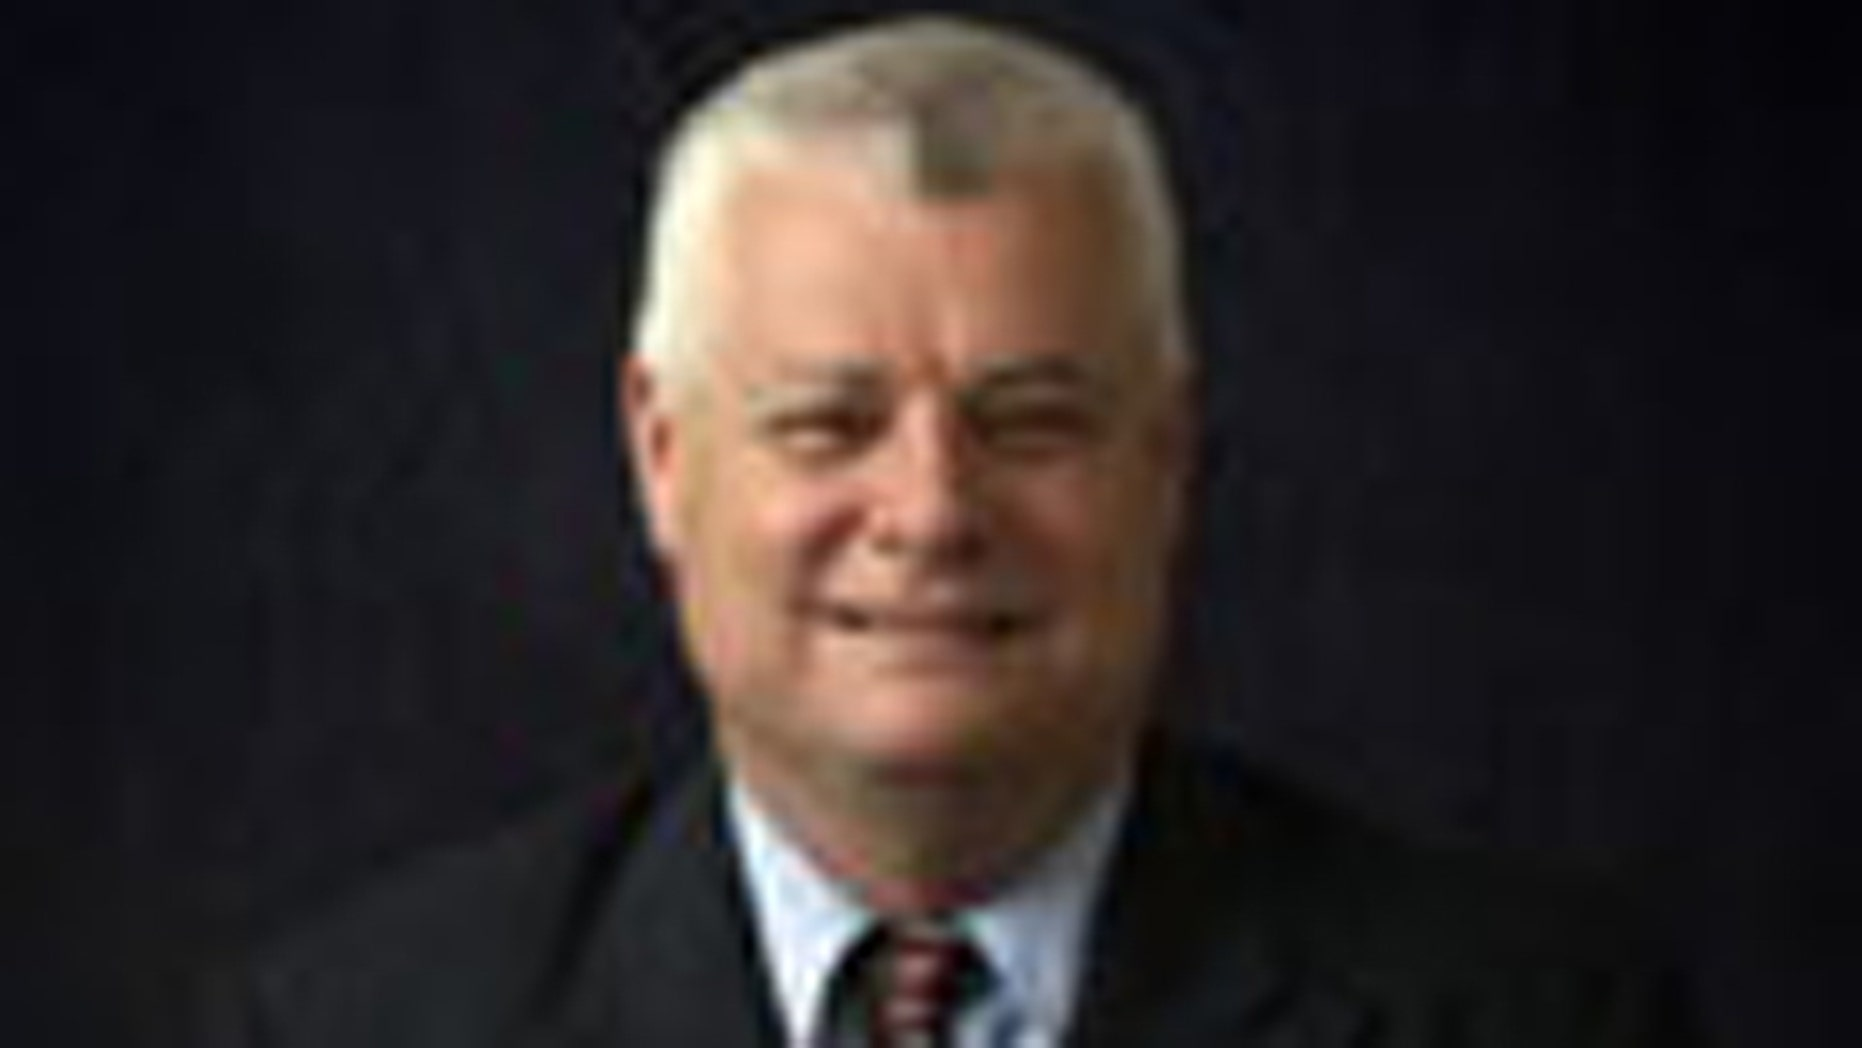 This undated photo shows City Manager Dan O'Leary.